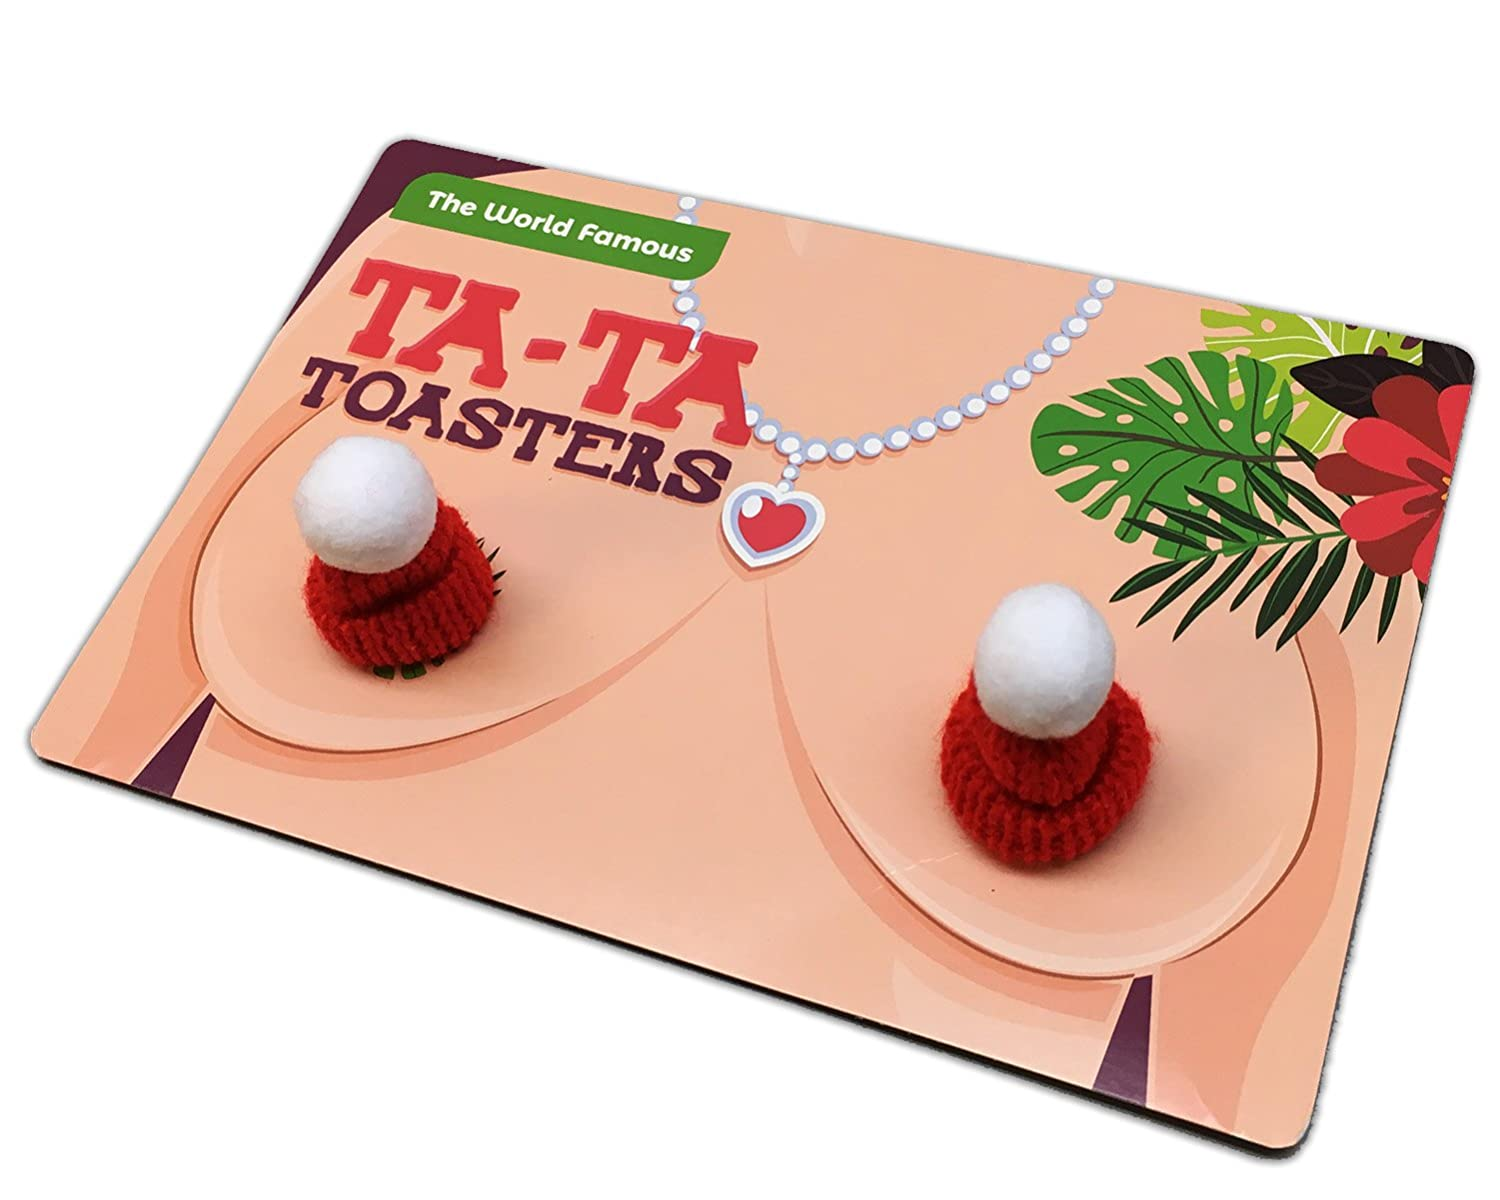 Ta-Ta Toasters – Funny Novelty Gift for Women Naughty Stocking Stuffers Gag  Gifts for Girl Friends BFF Gifts for Ladies Funny White Elephant Idea Chest  ...